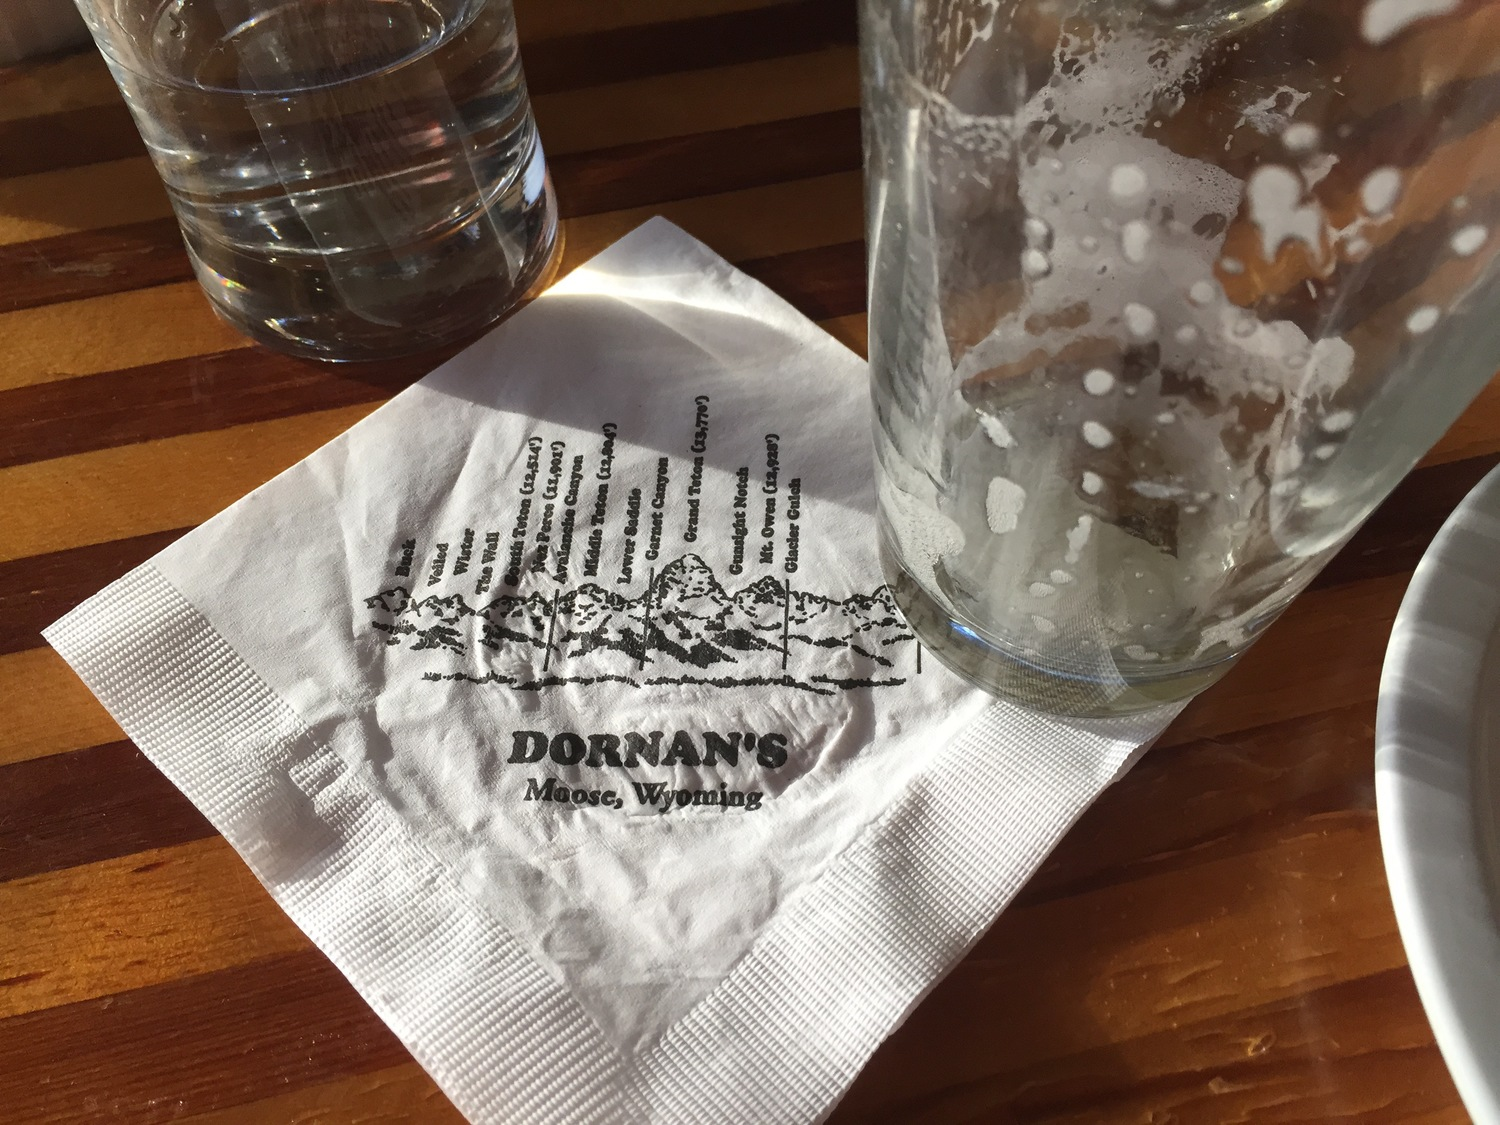 Victory beers at Dornan's! The napkin even shows our route!